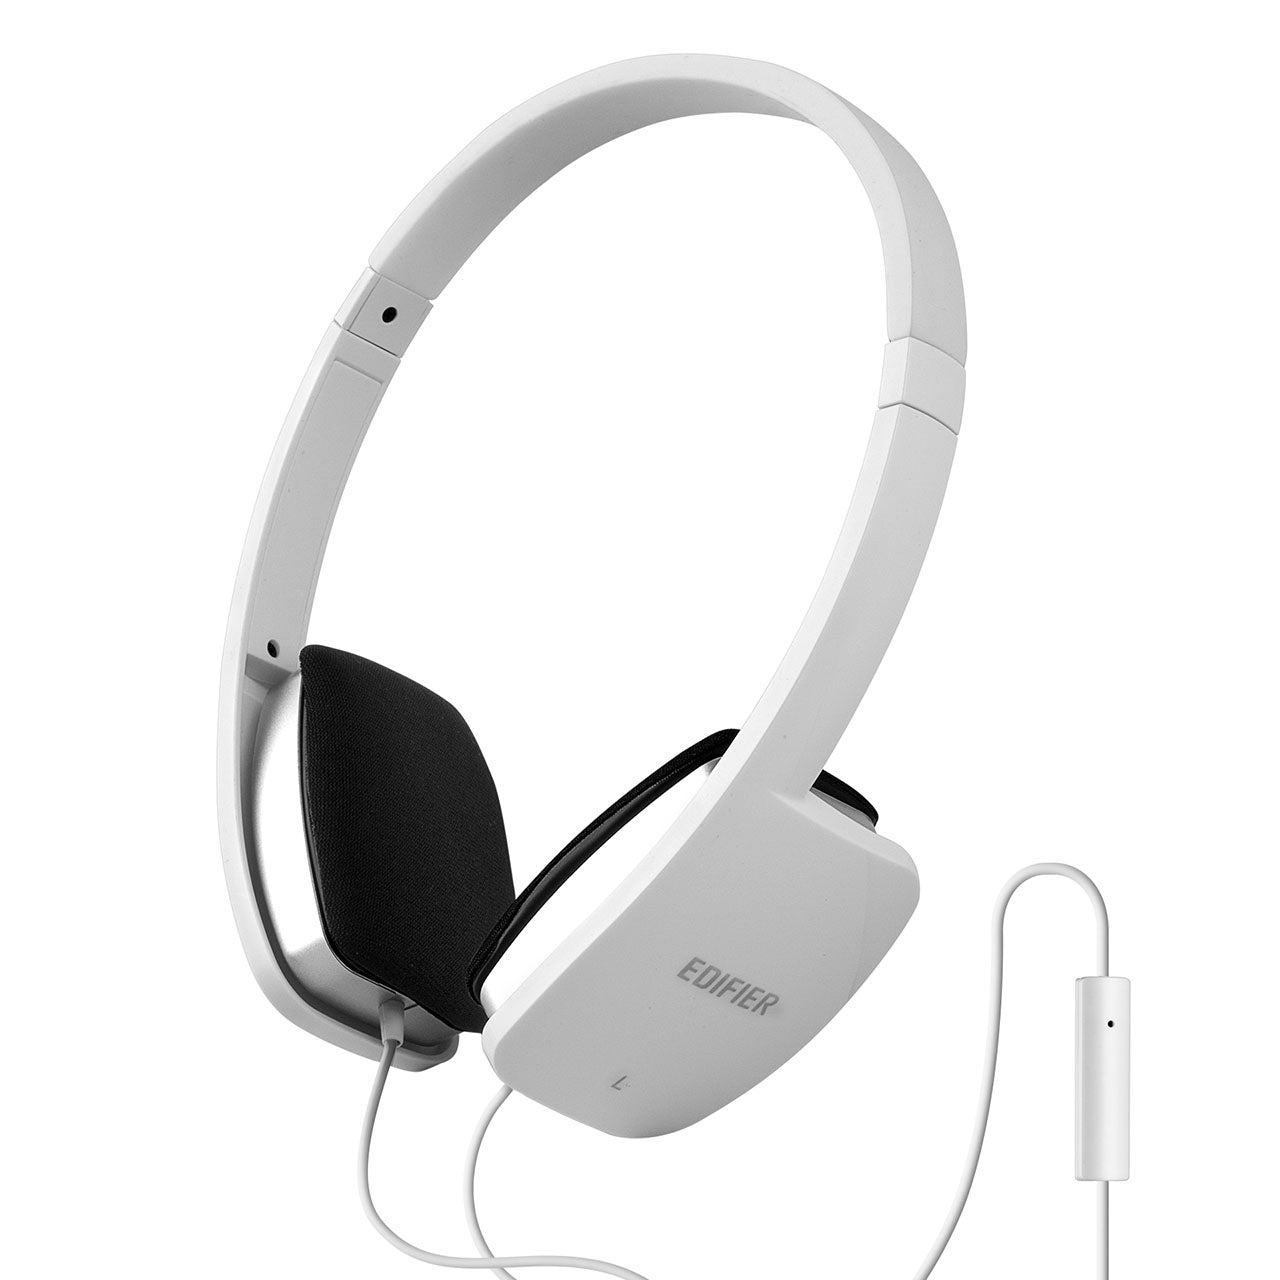 P640 Headphones Stylish Headset